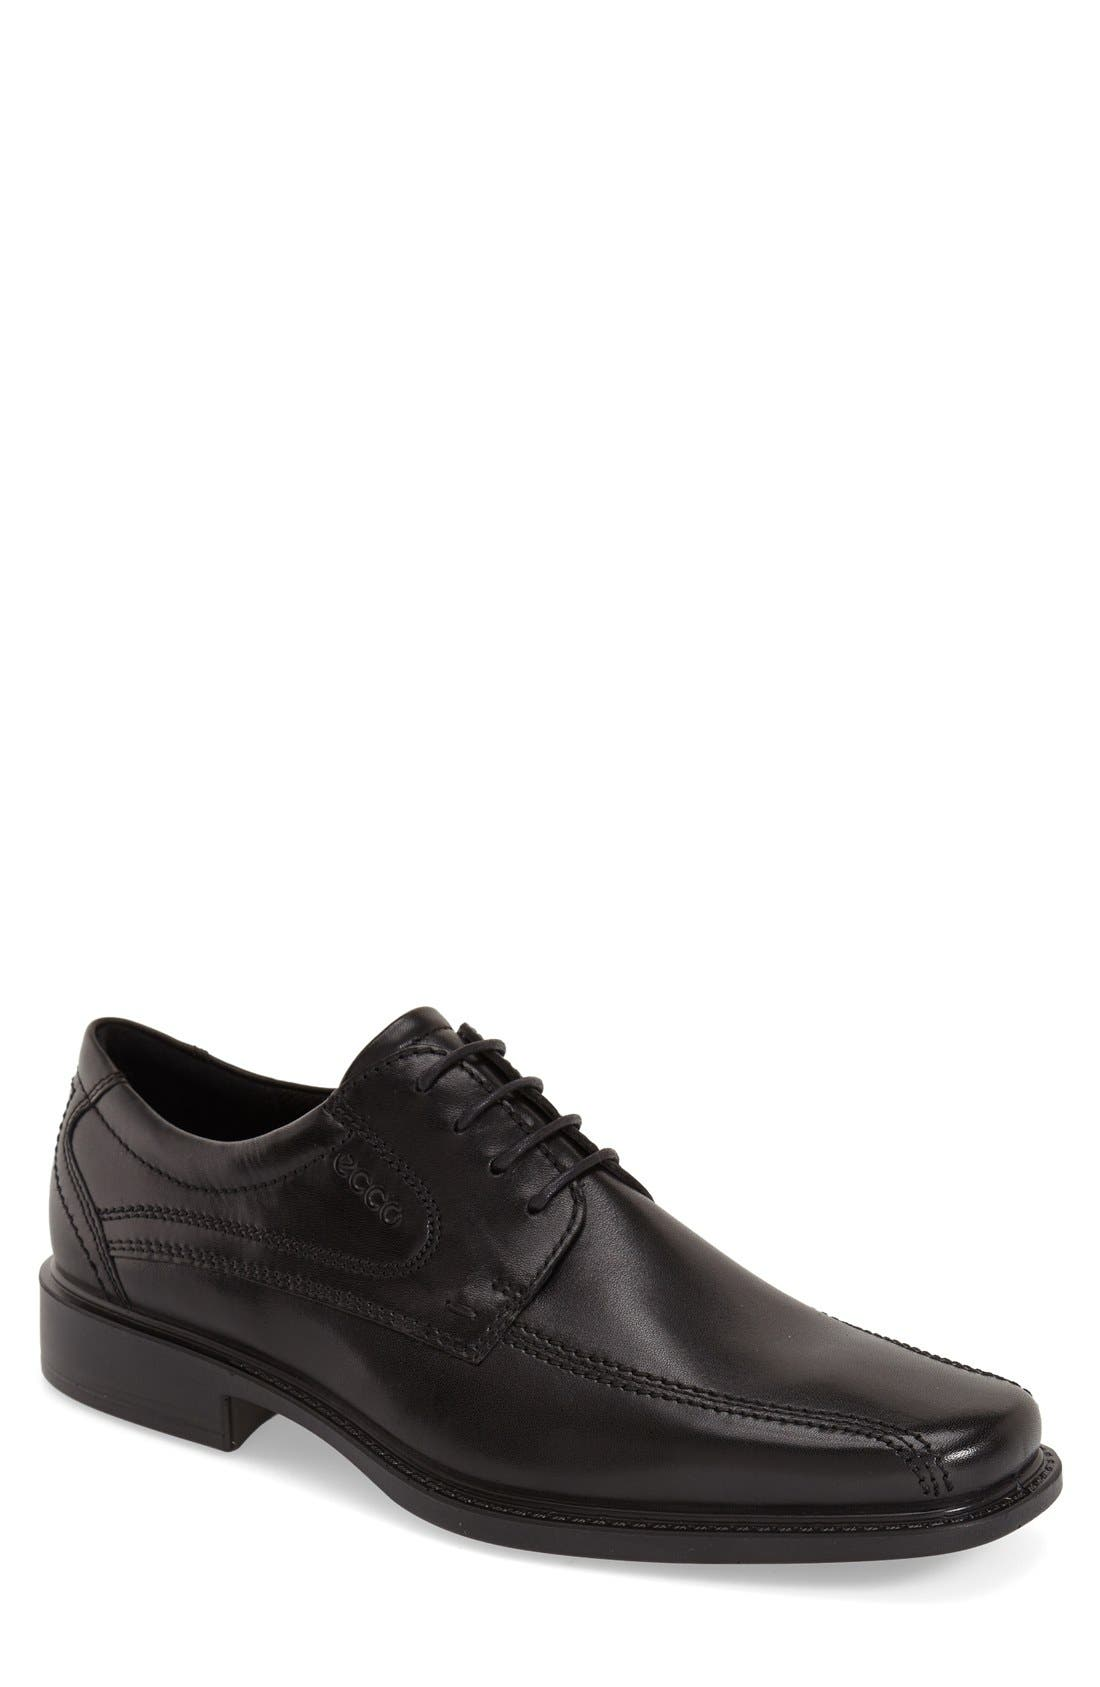 ECCO 'New Jersey' Bicycle Toe Oxford, Main, color, BLACK